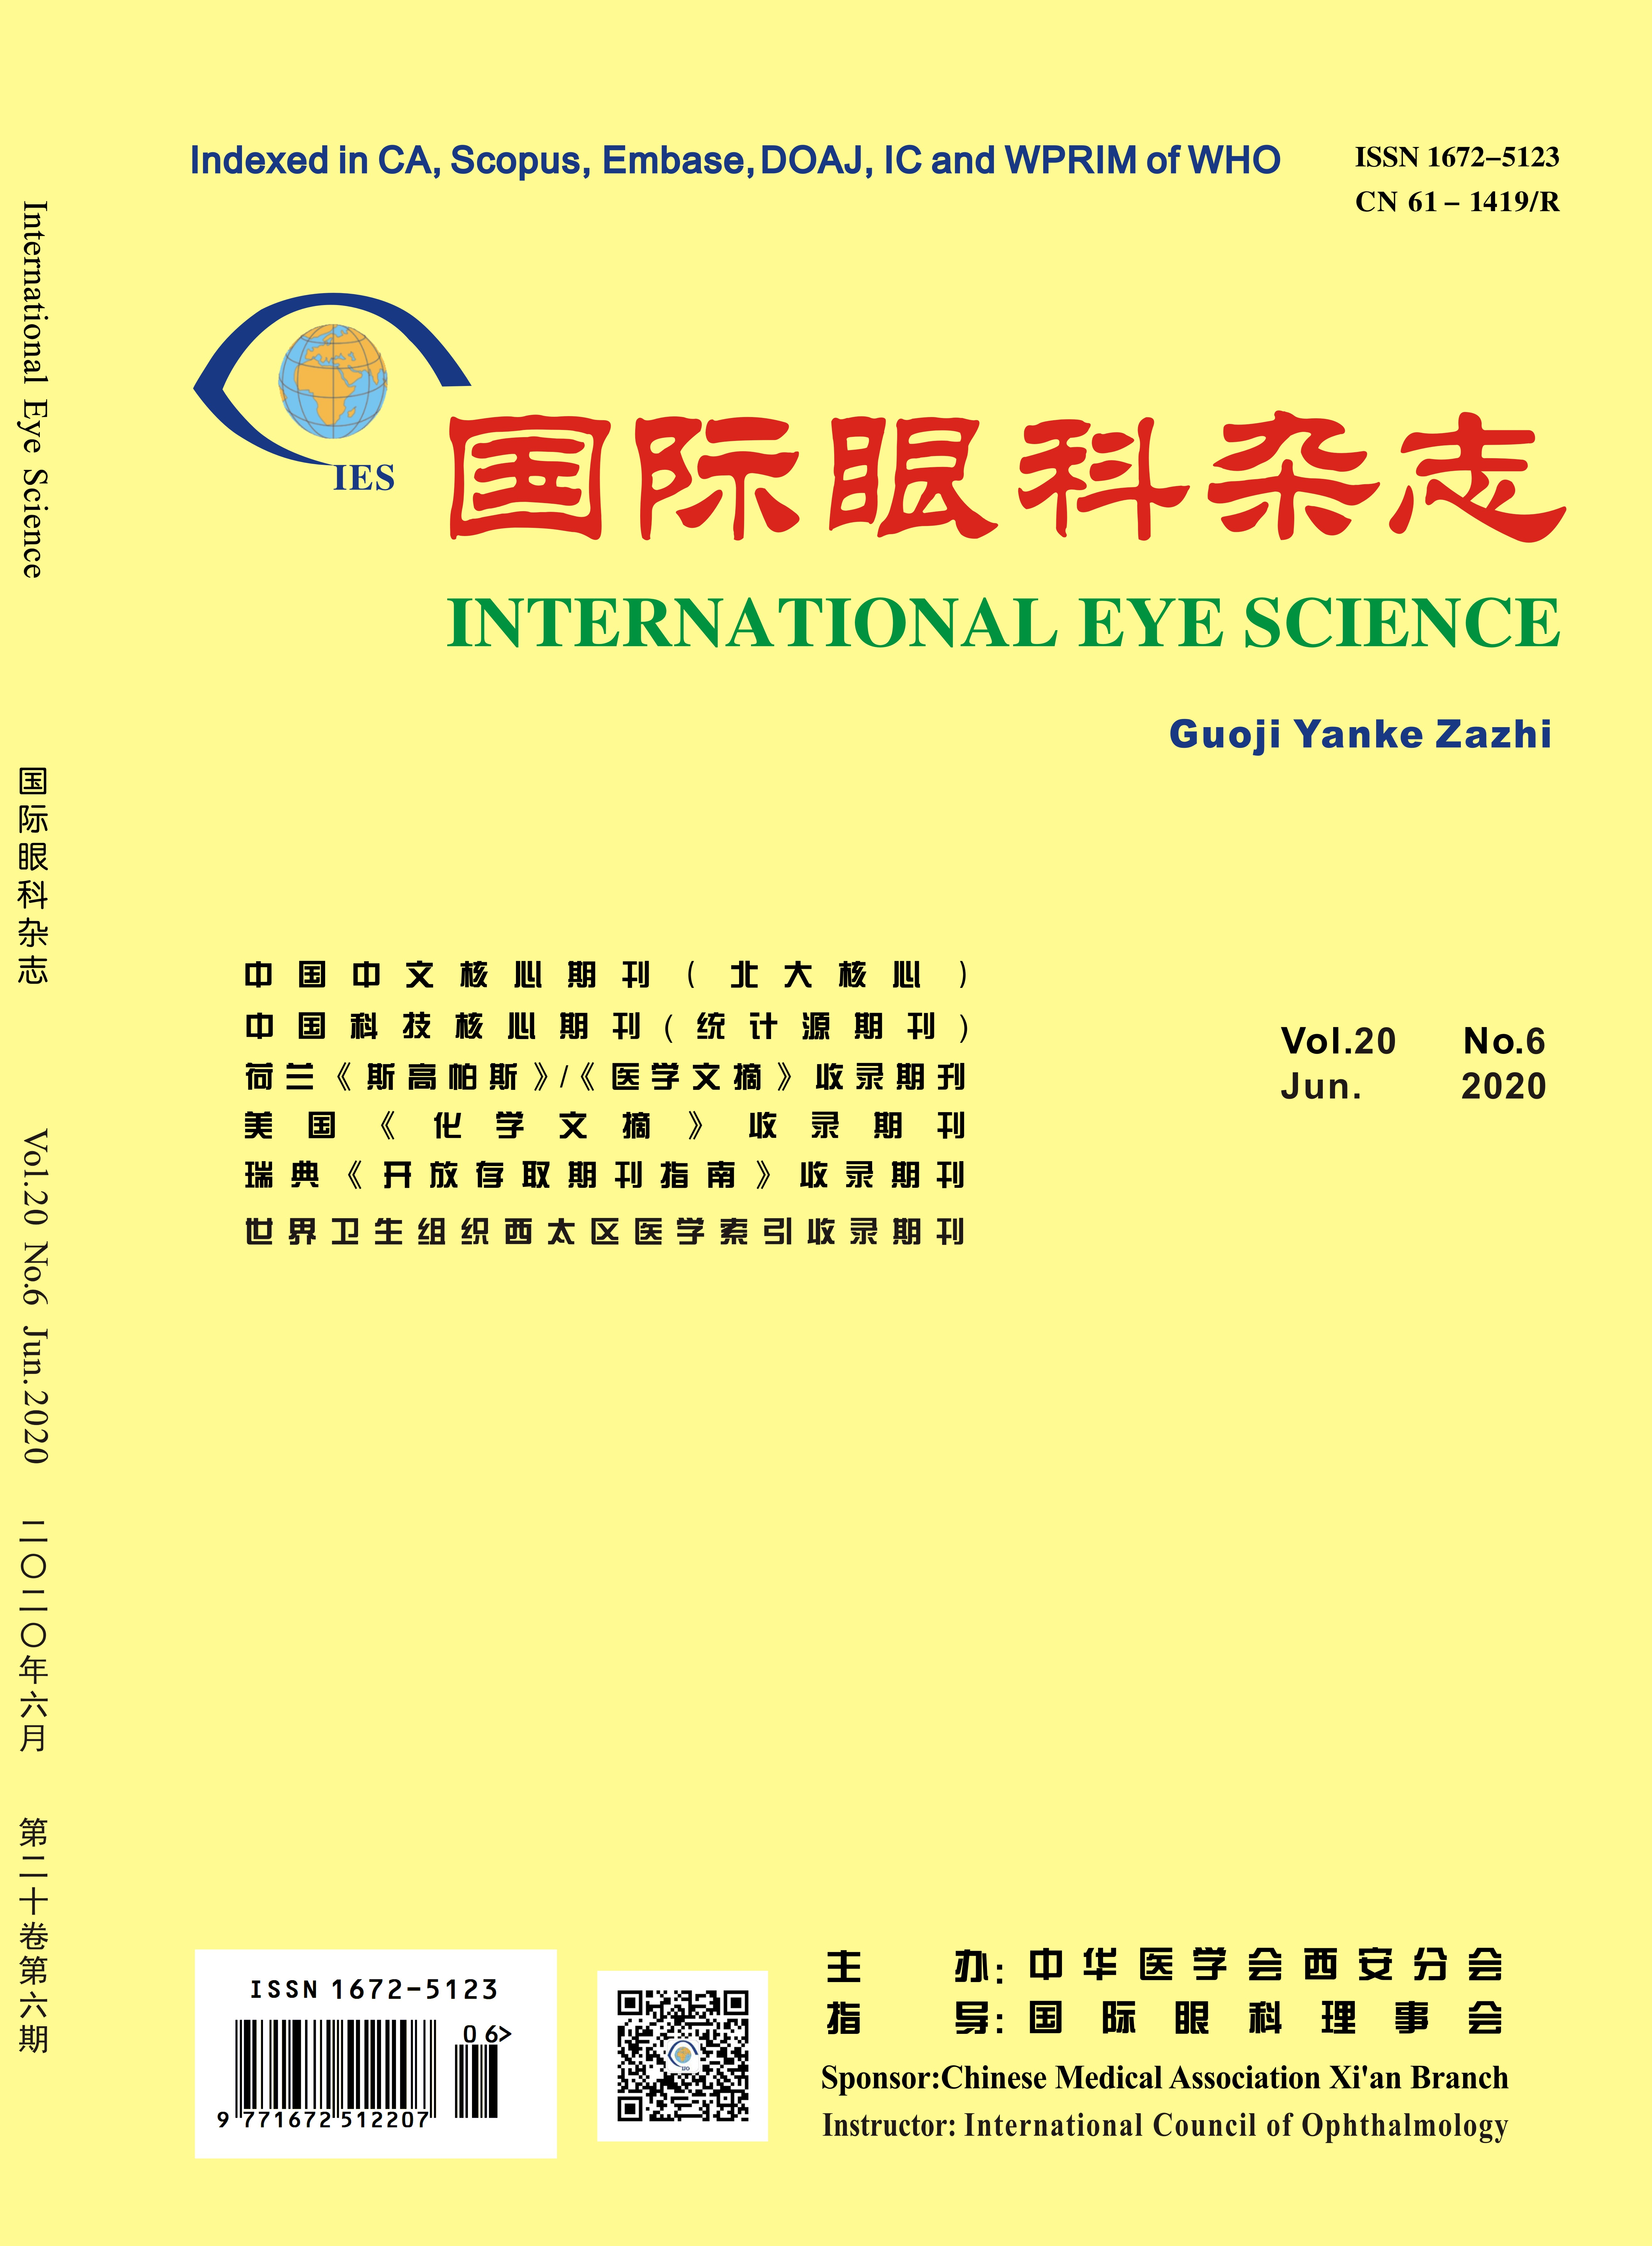 Welcome To International Journal of Ophthalmology Press